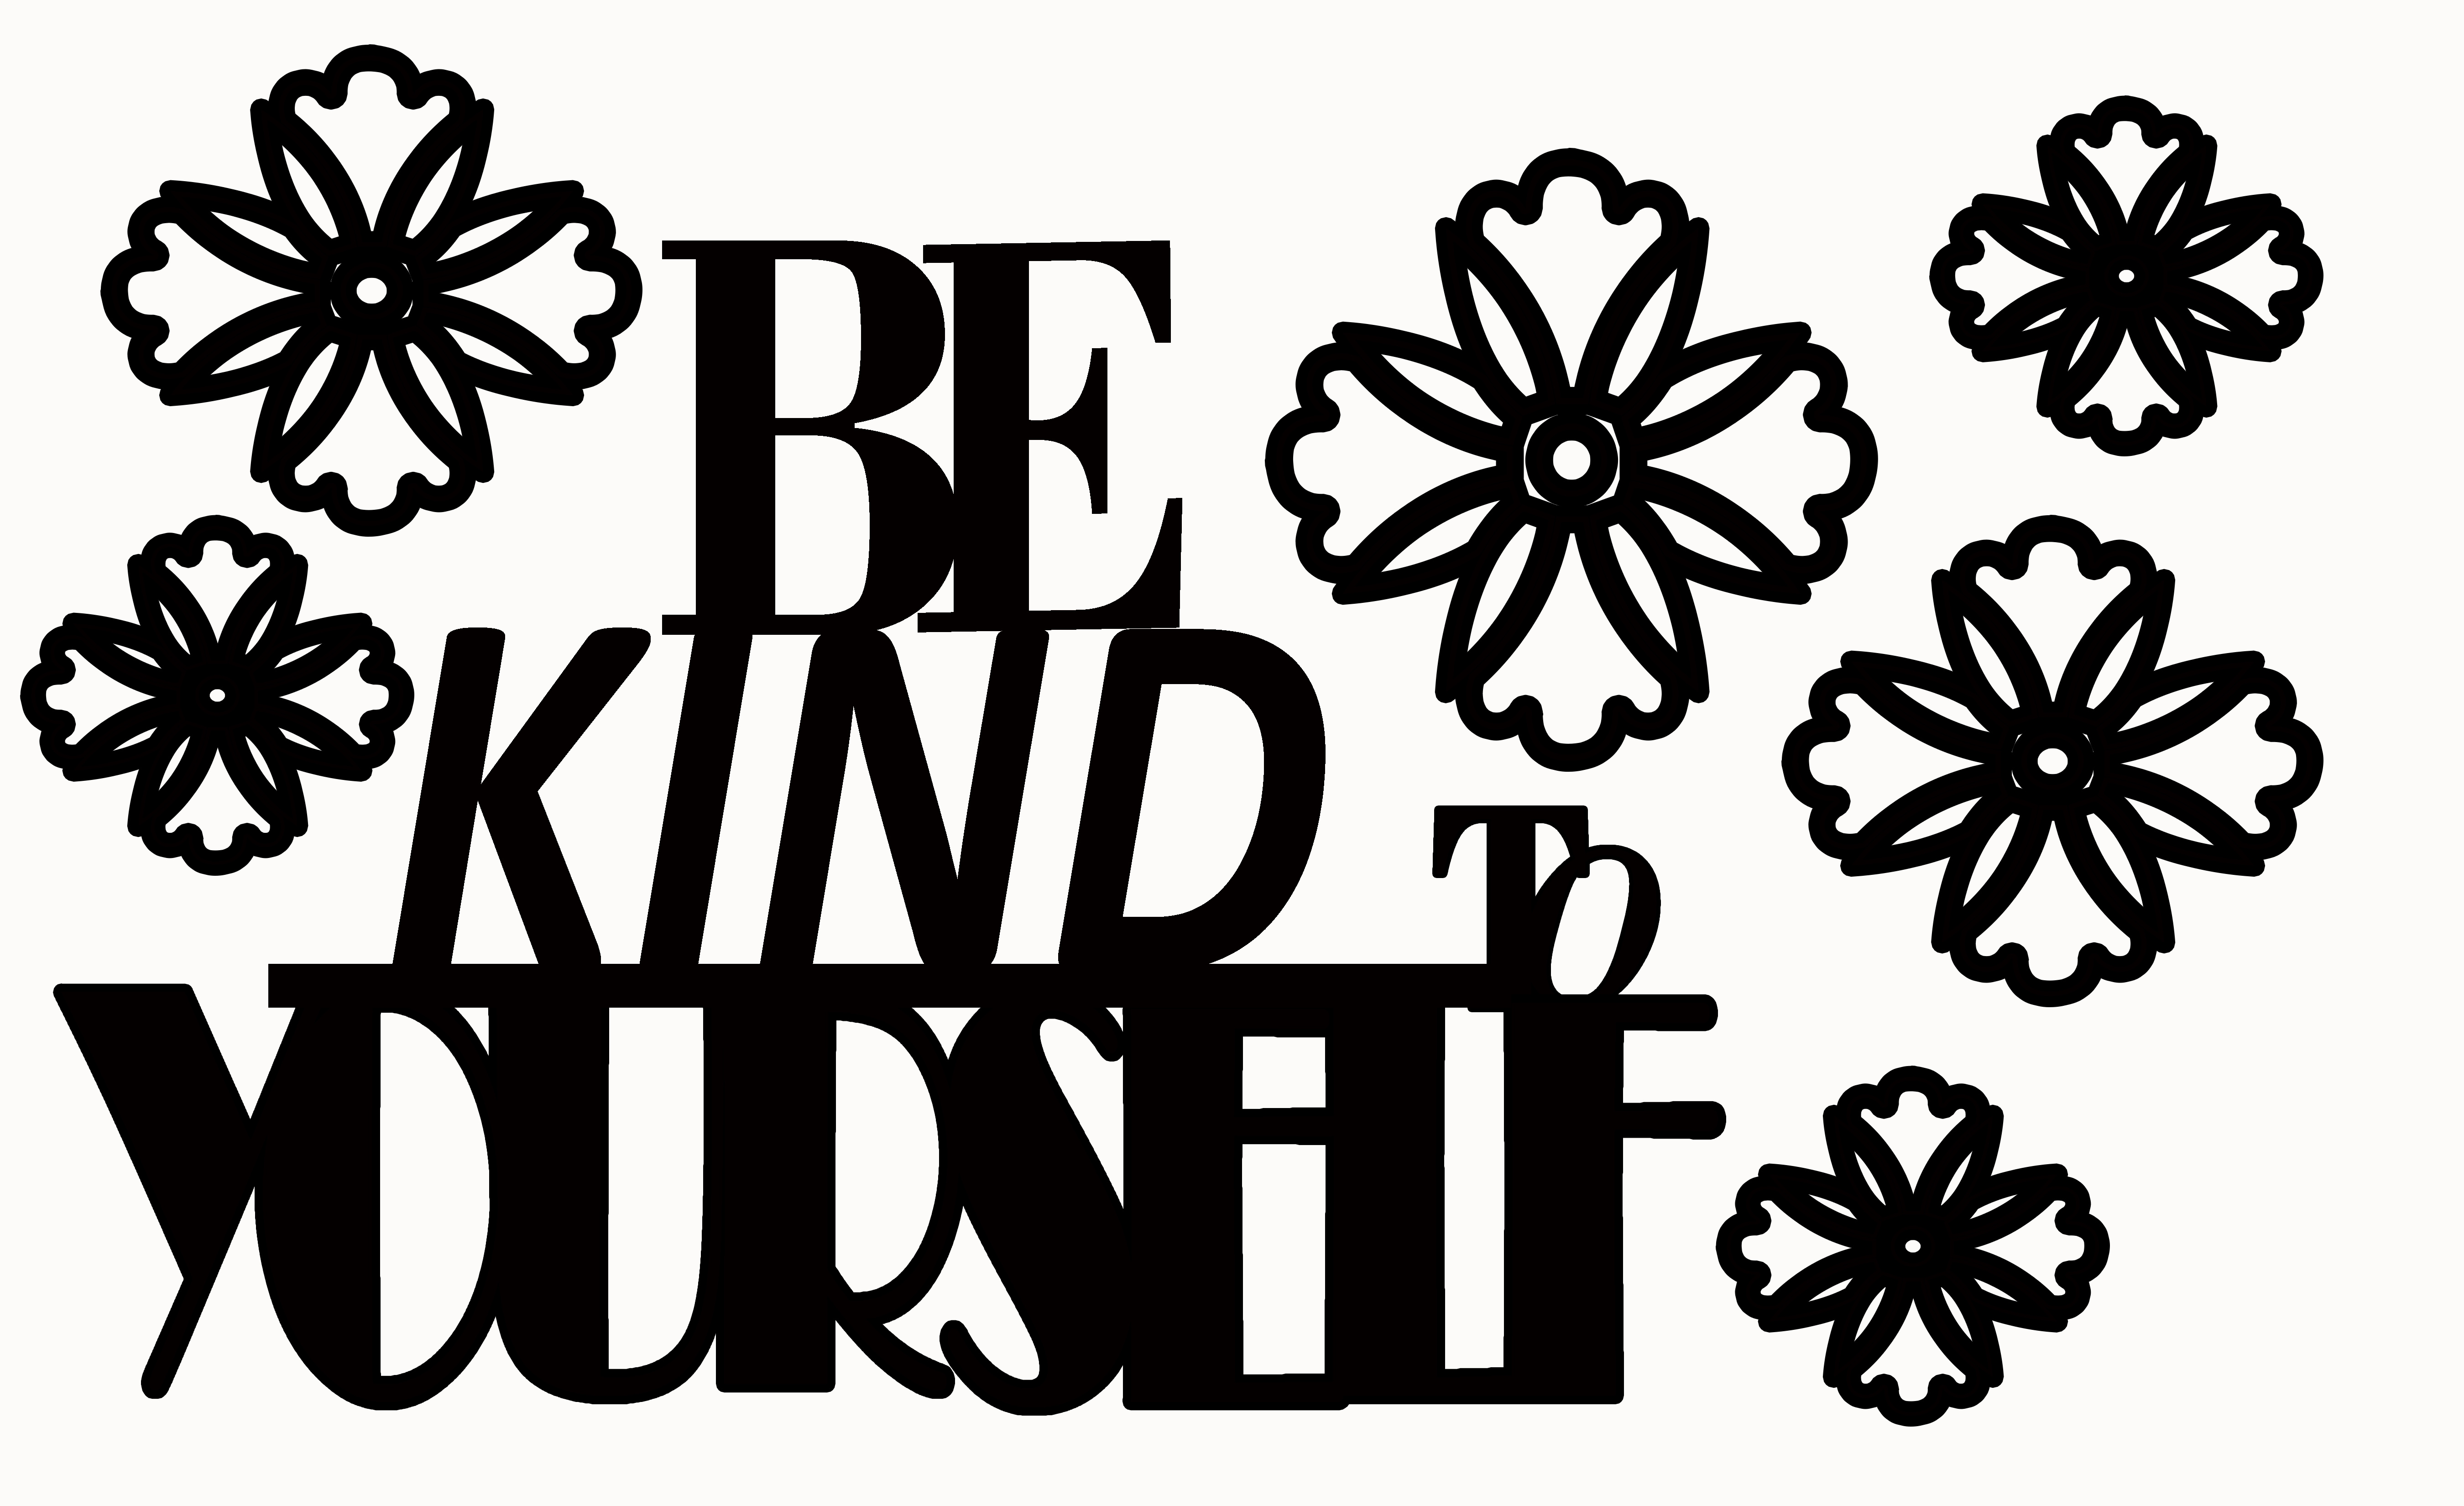 BE KIND TO YOURSELF 110 x 180 mm min buy 3